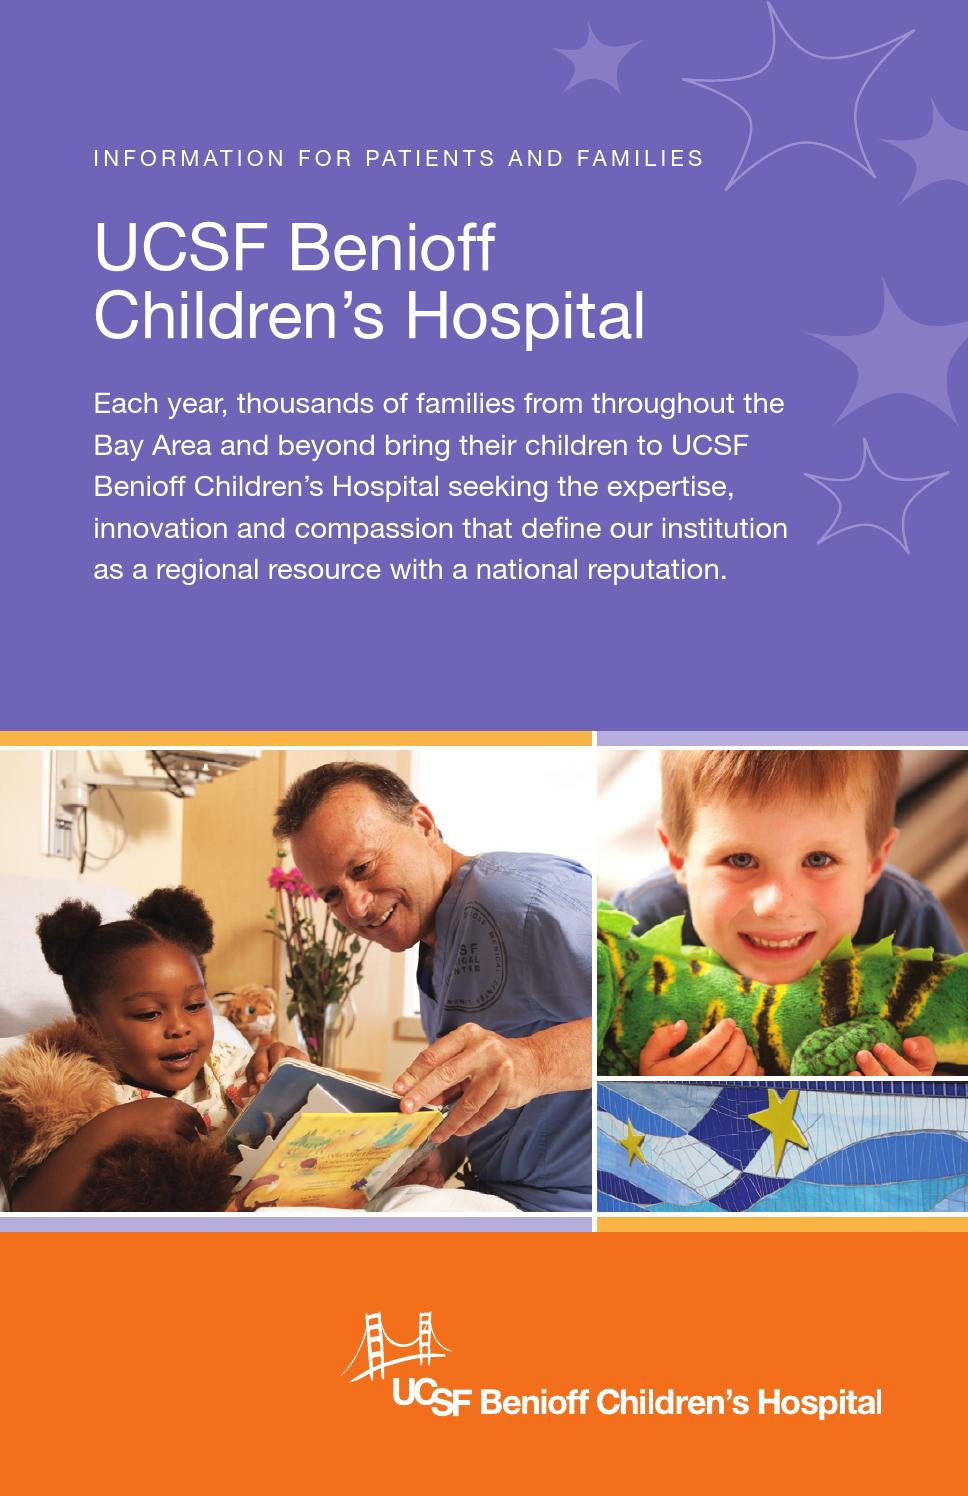 UCSF Benioff Children's Hospital: Information for Patients and